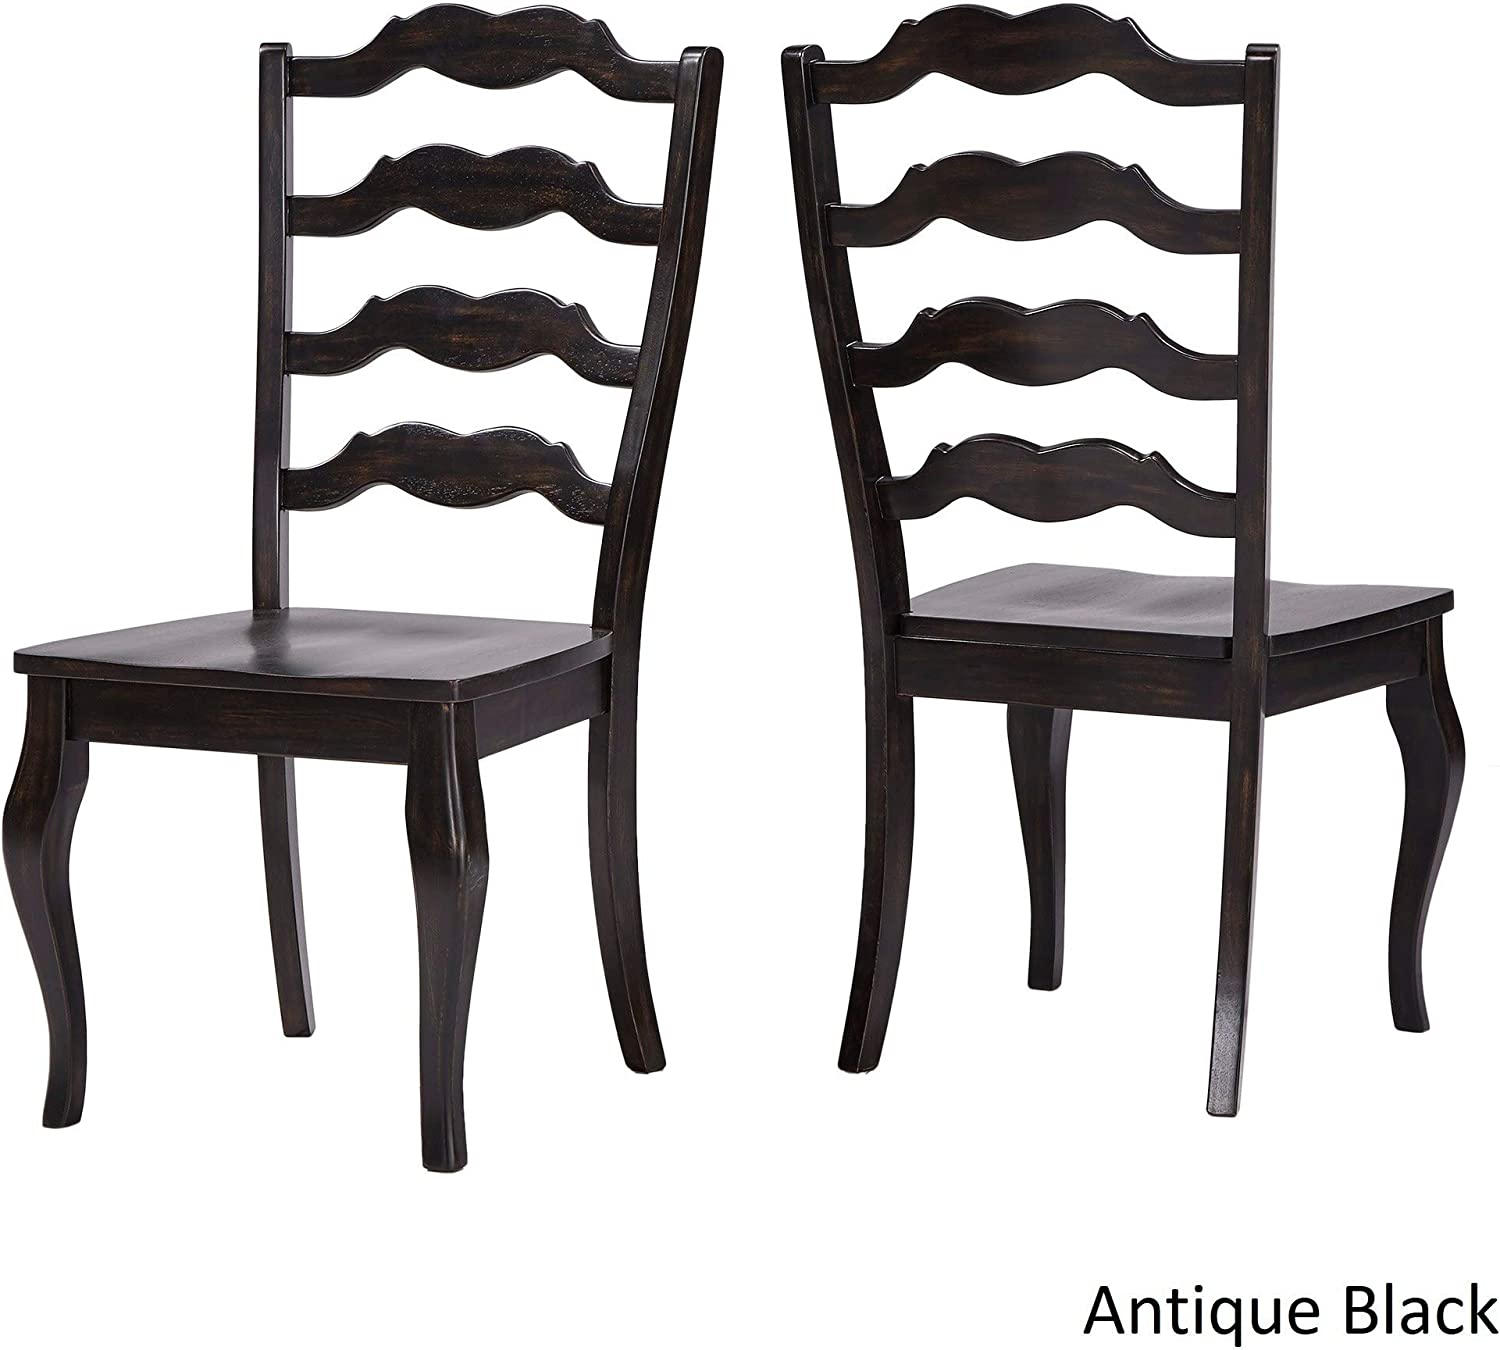 Inspire Q Eleanor French Ladder Back Wood Dining Chair Set of 2 by Classic Black Antique